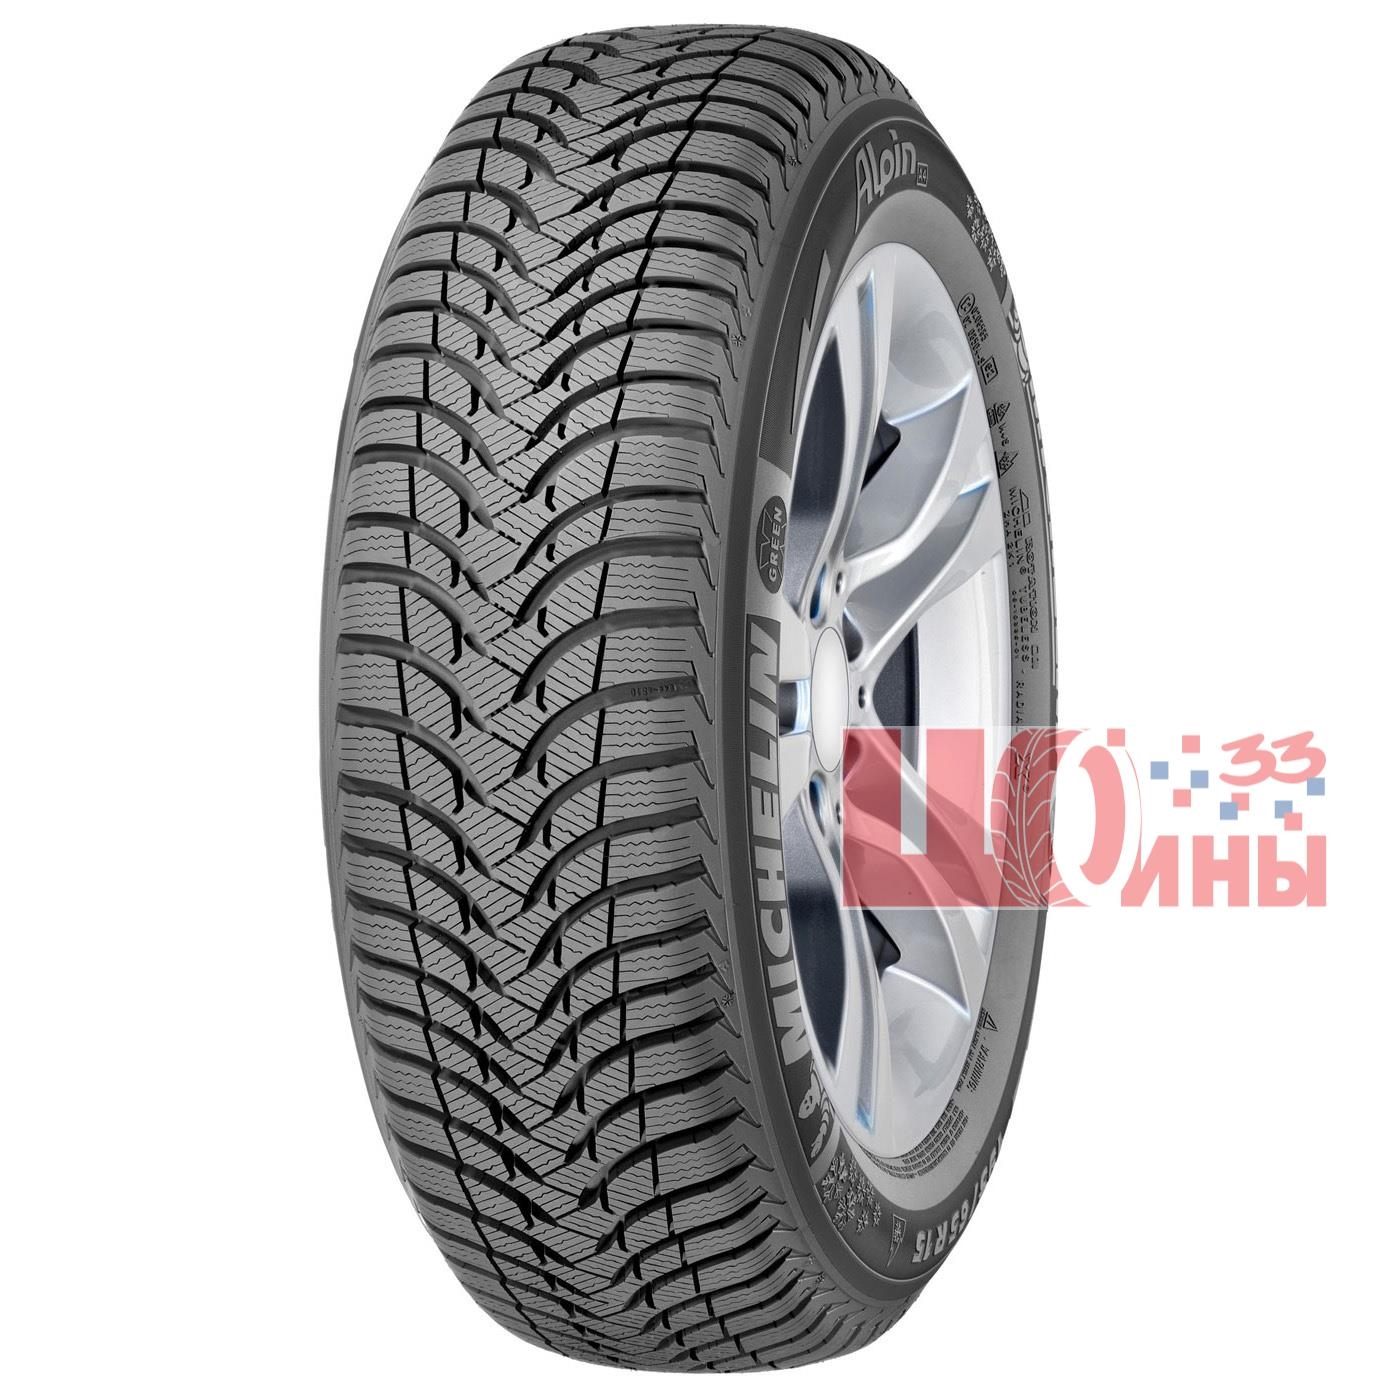 Б/У 205/55 R16 Зима MICHELIN Alpin A-4 Кат. 3